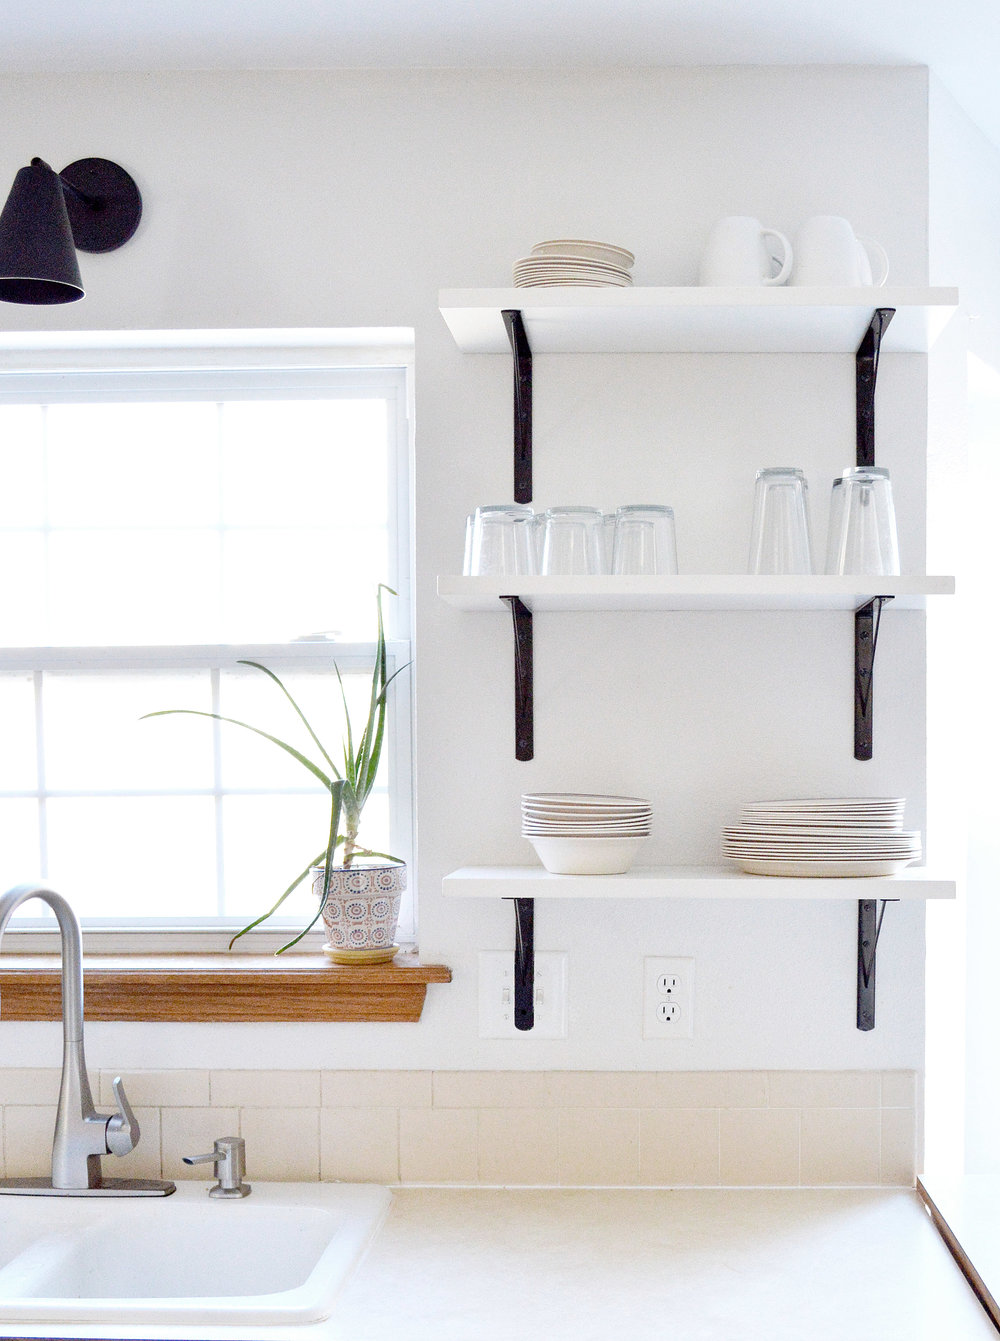 Kitchen Shelves 9.jpg